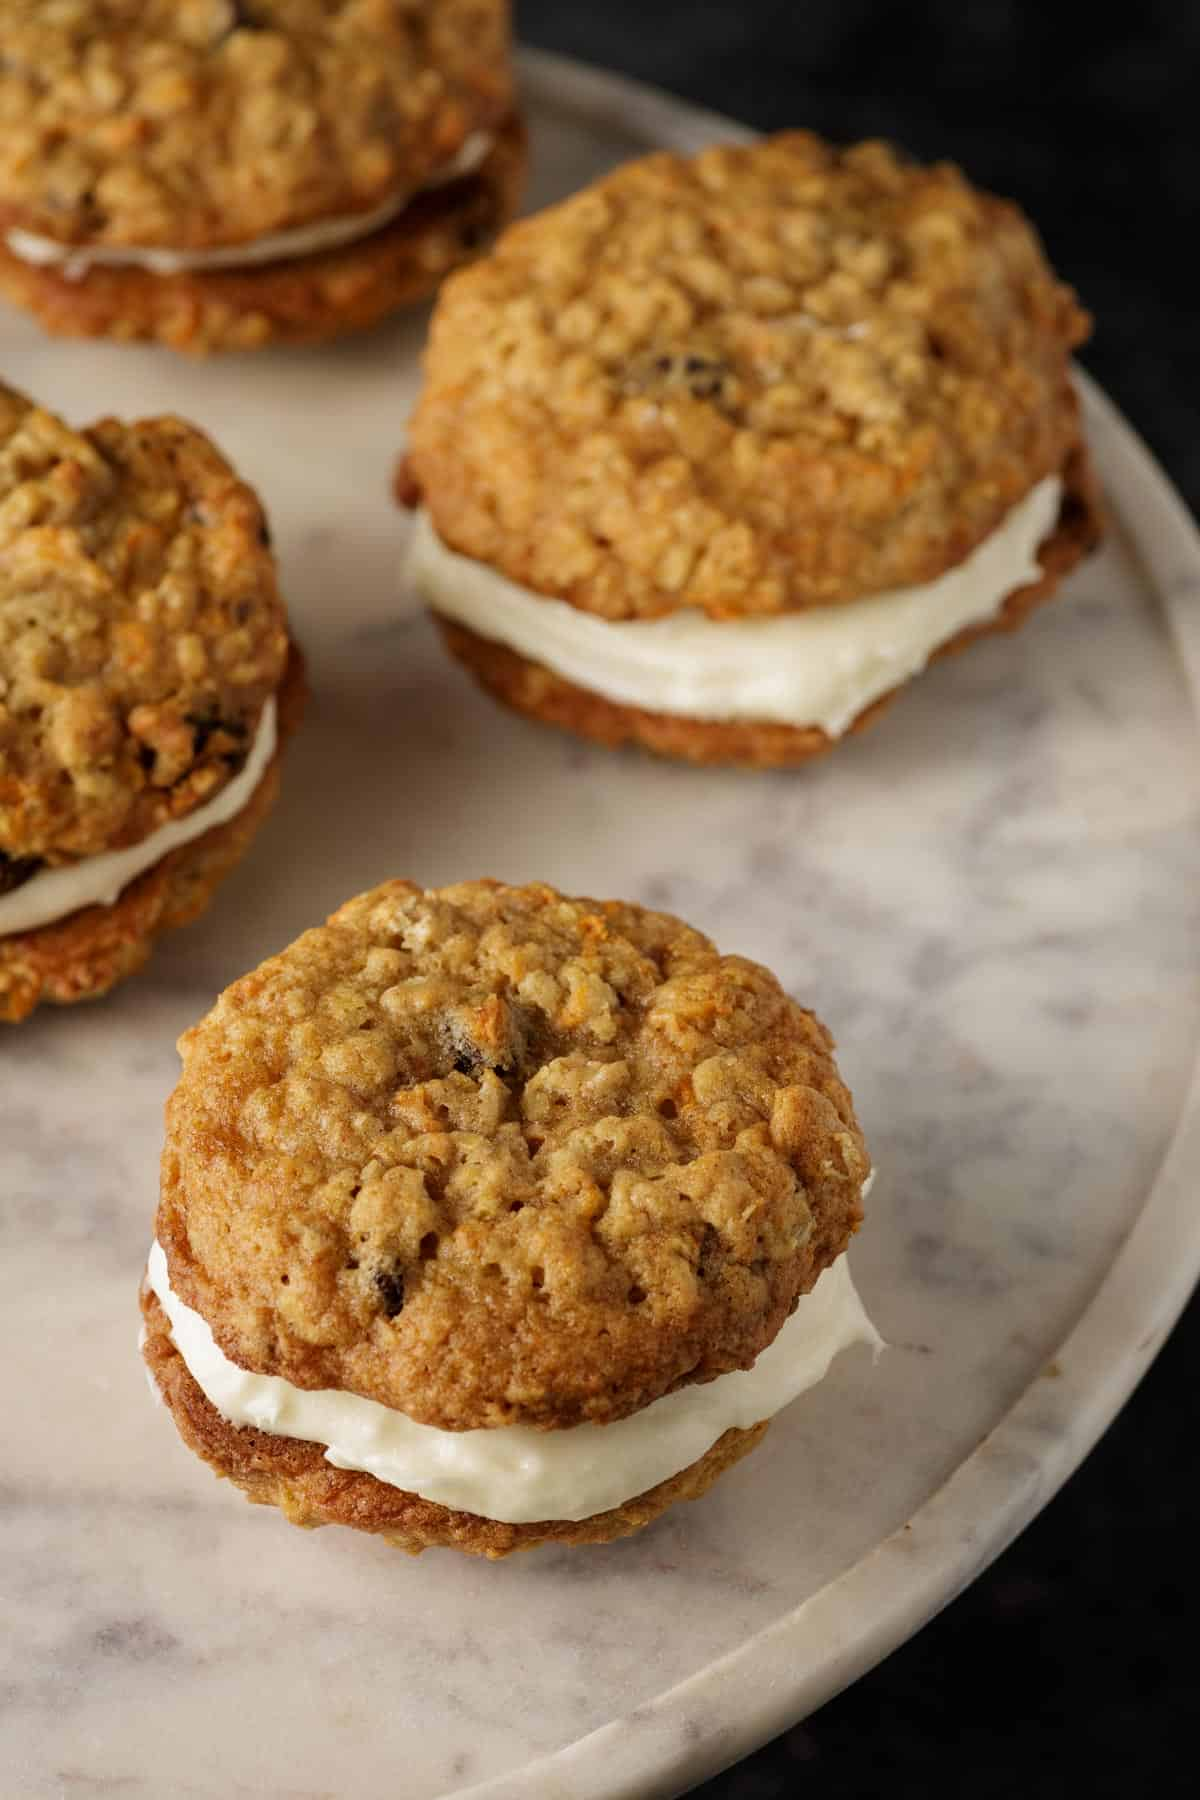 A marble platter with cream cheese filled carrot cake cookiees